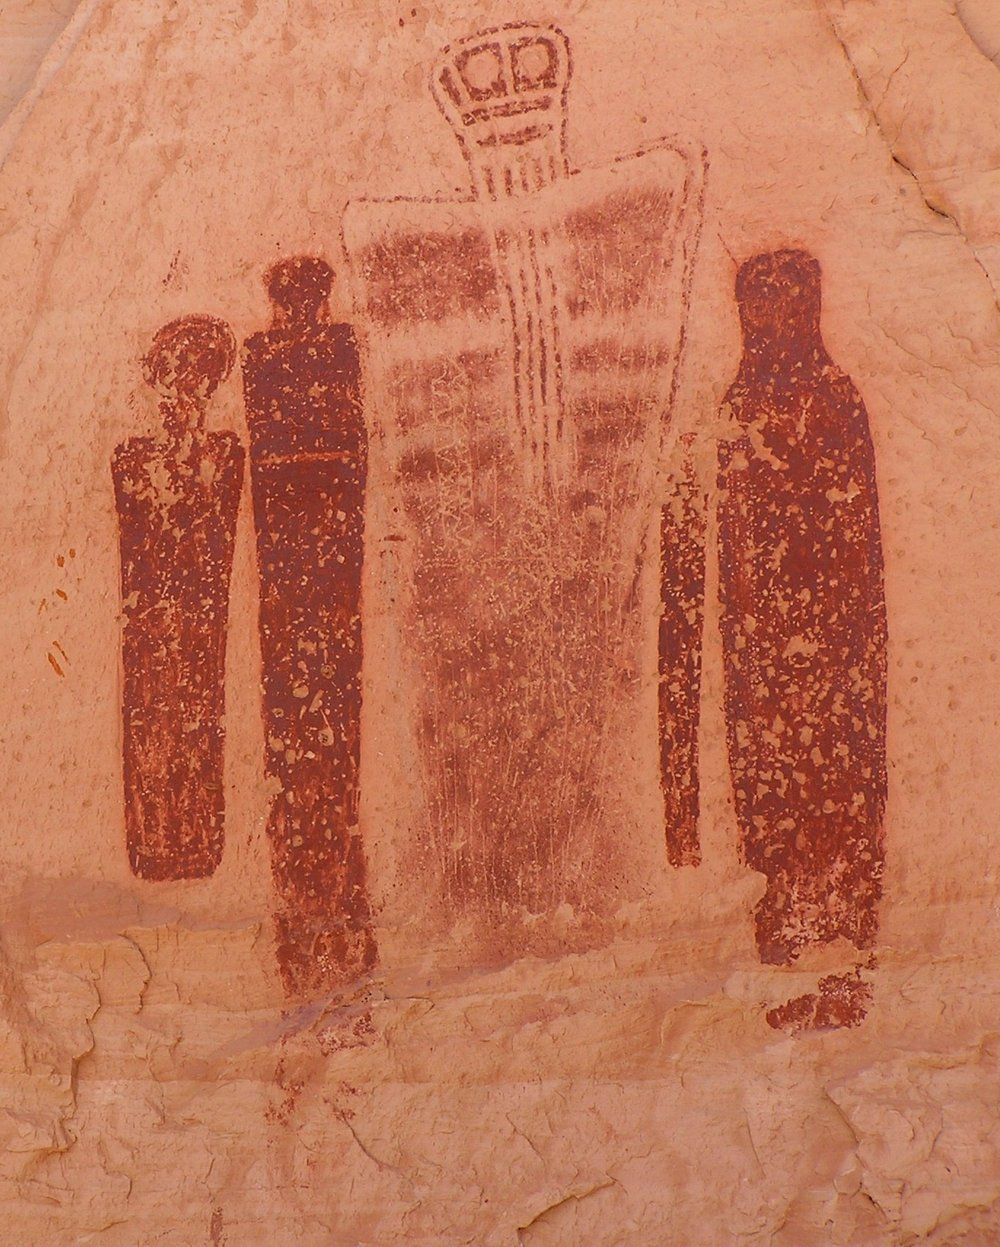 Human History - Zion Canyon is at the edge of the Colorado Plateau where it meets the Basin and Range region. Being at this point geographic inflection, it also has been near the intersection of human cultures. Here is a brief overview of the area's history and suggestions of ways to explore it further.Read more >>